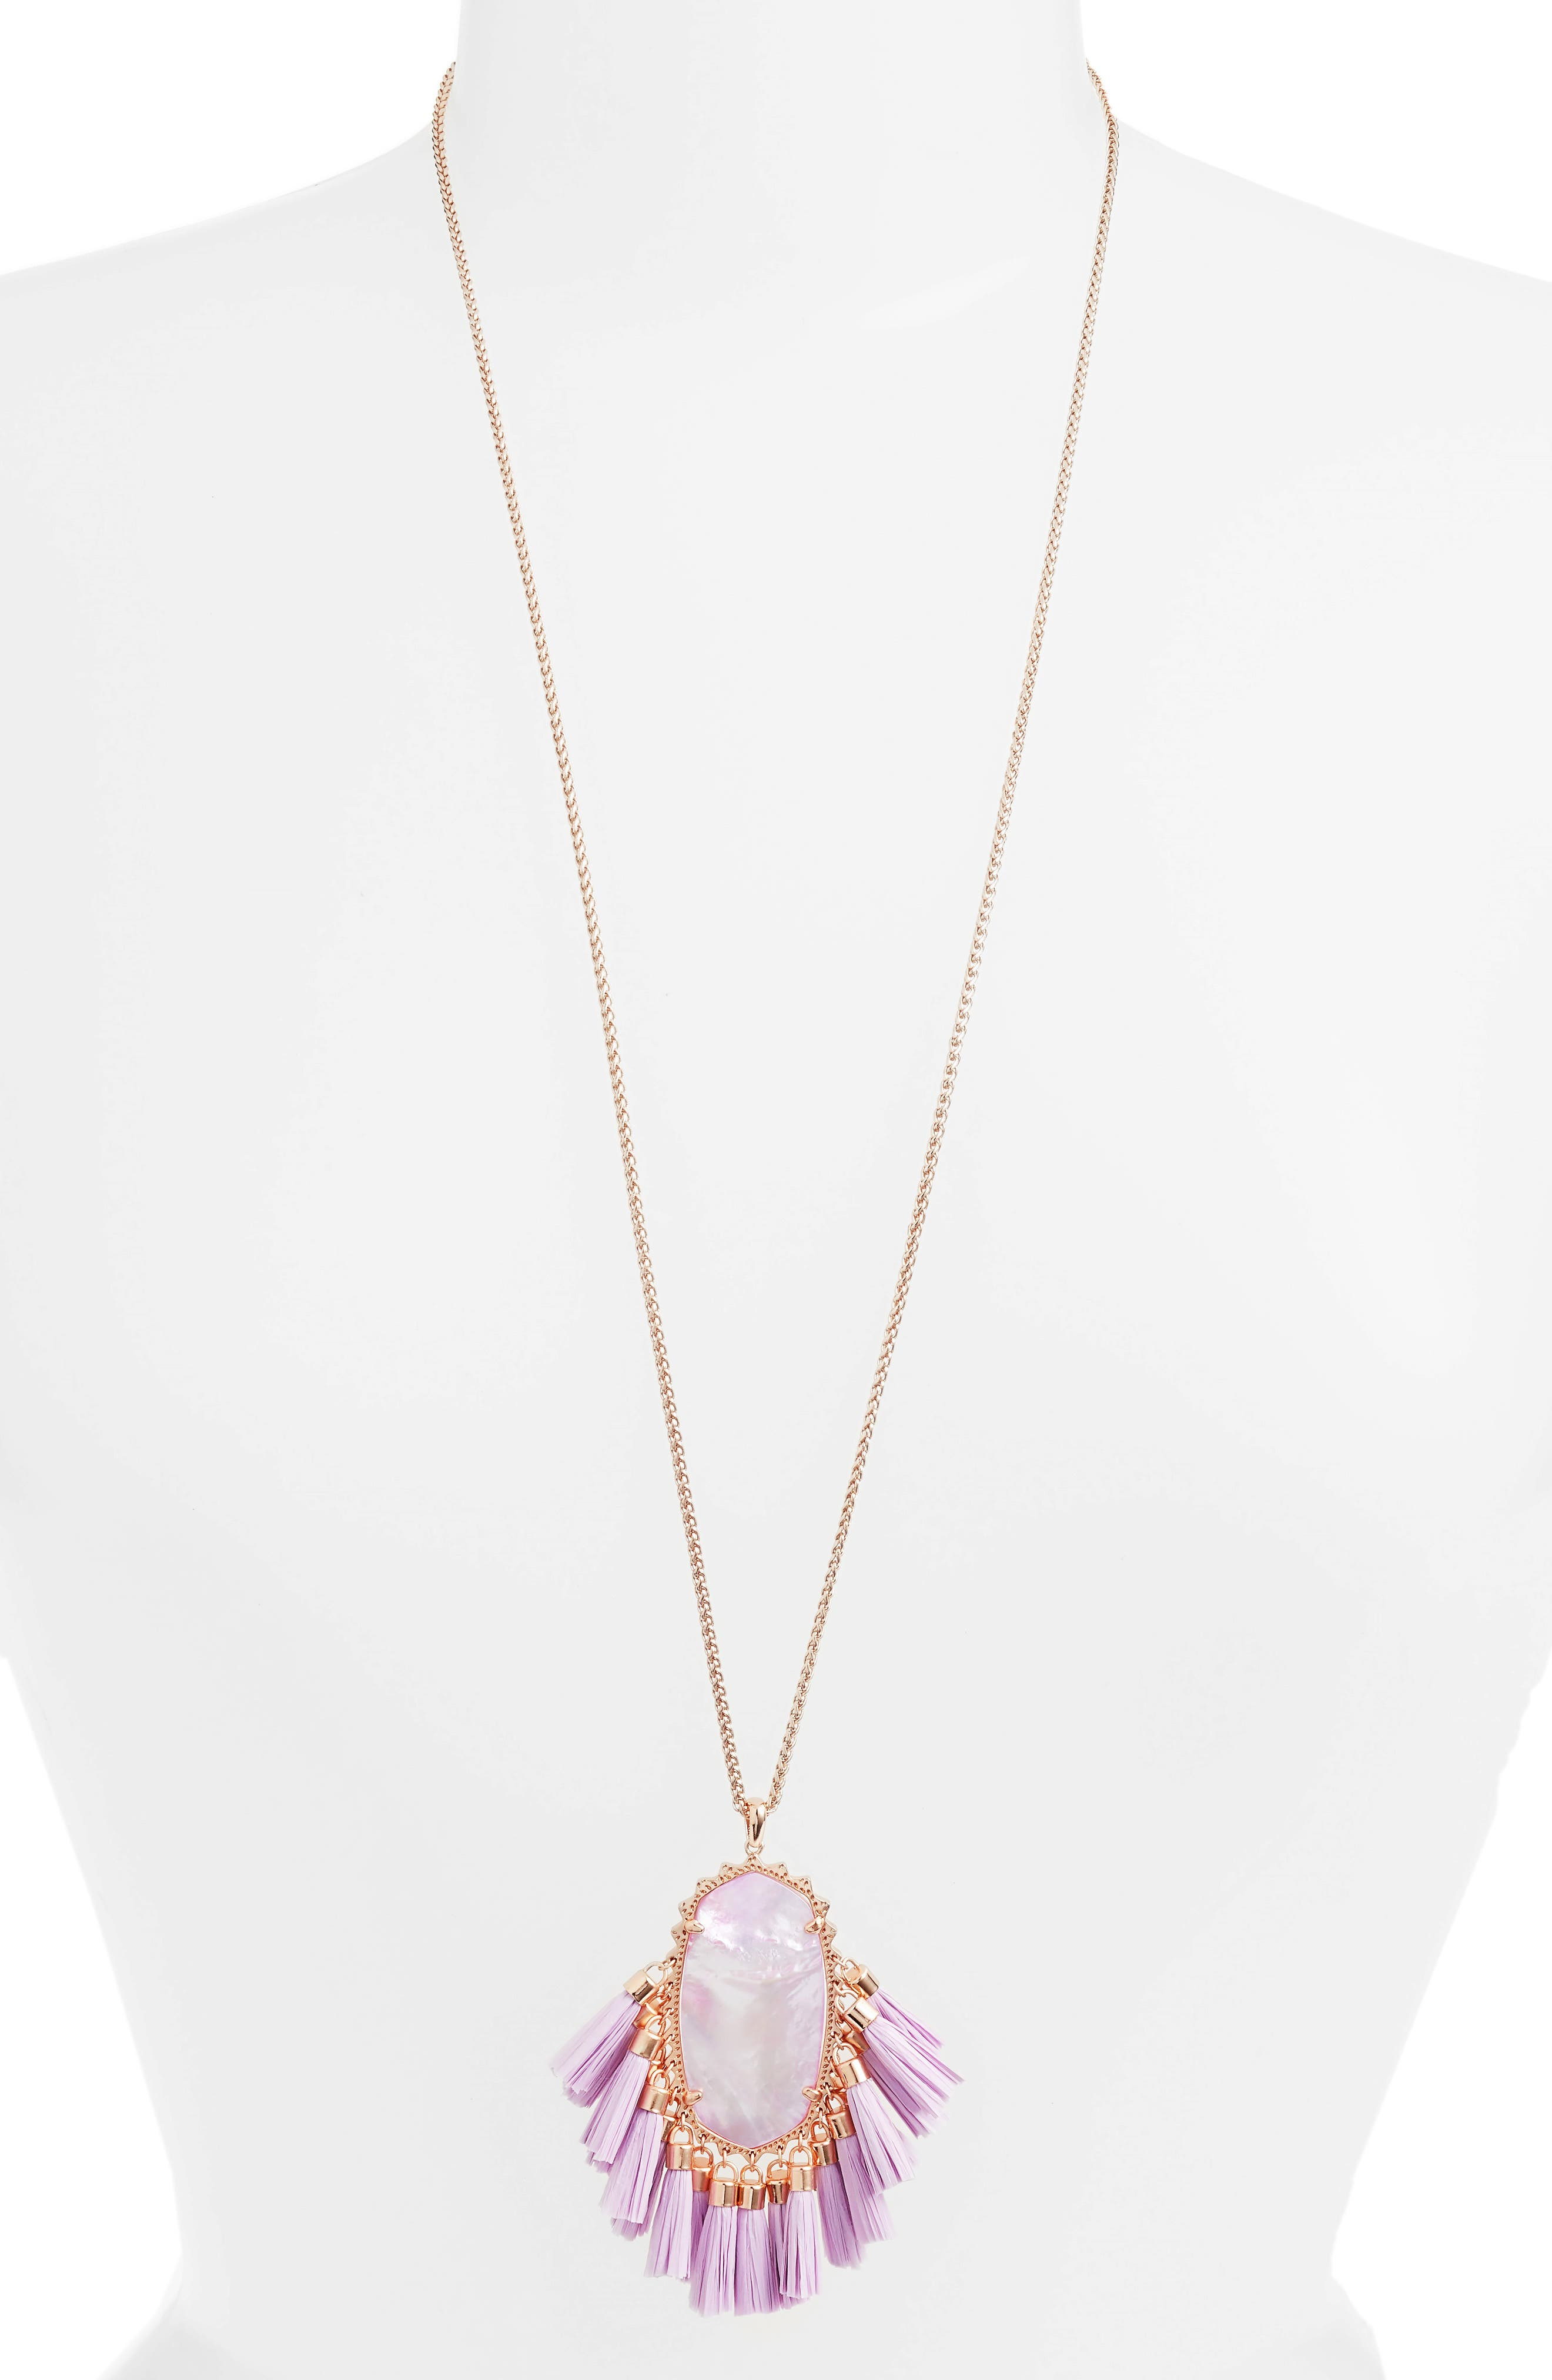 Betsy Pendant Necklace,                             Main thumbnail 1, color,                             LILAC MOP/ ROSE GOLD